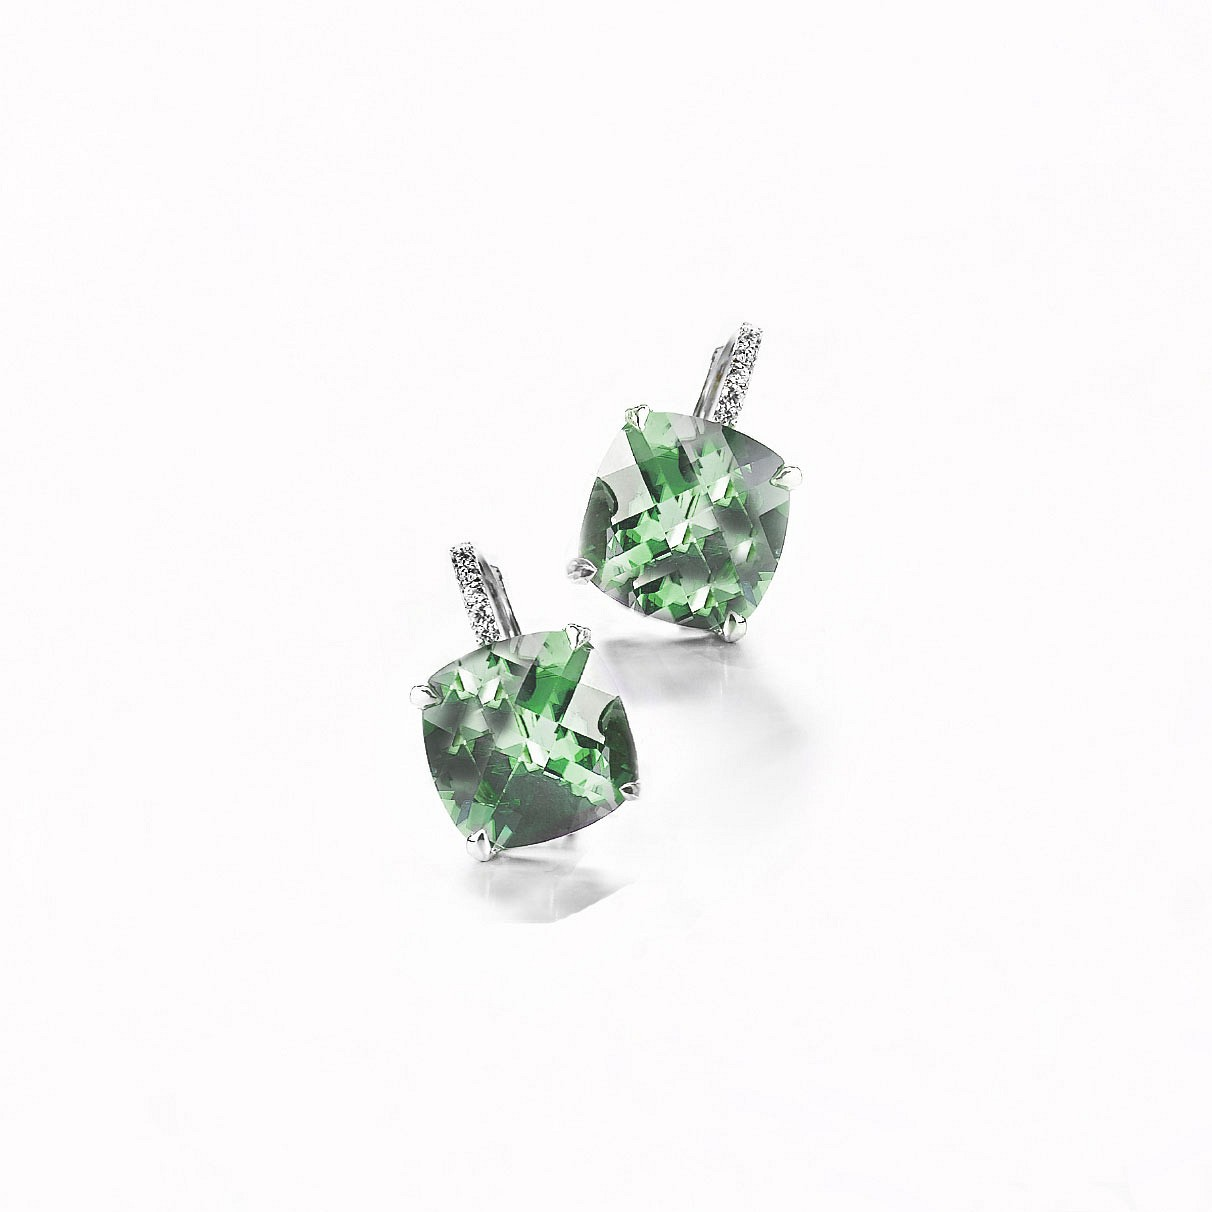 Cushion cut diamond drop earrings. Green amethyst